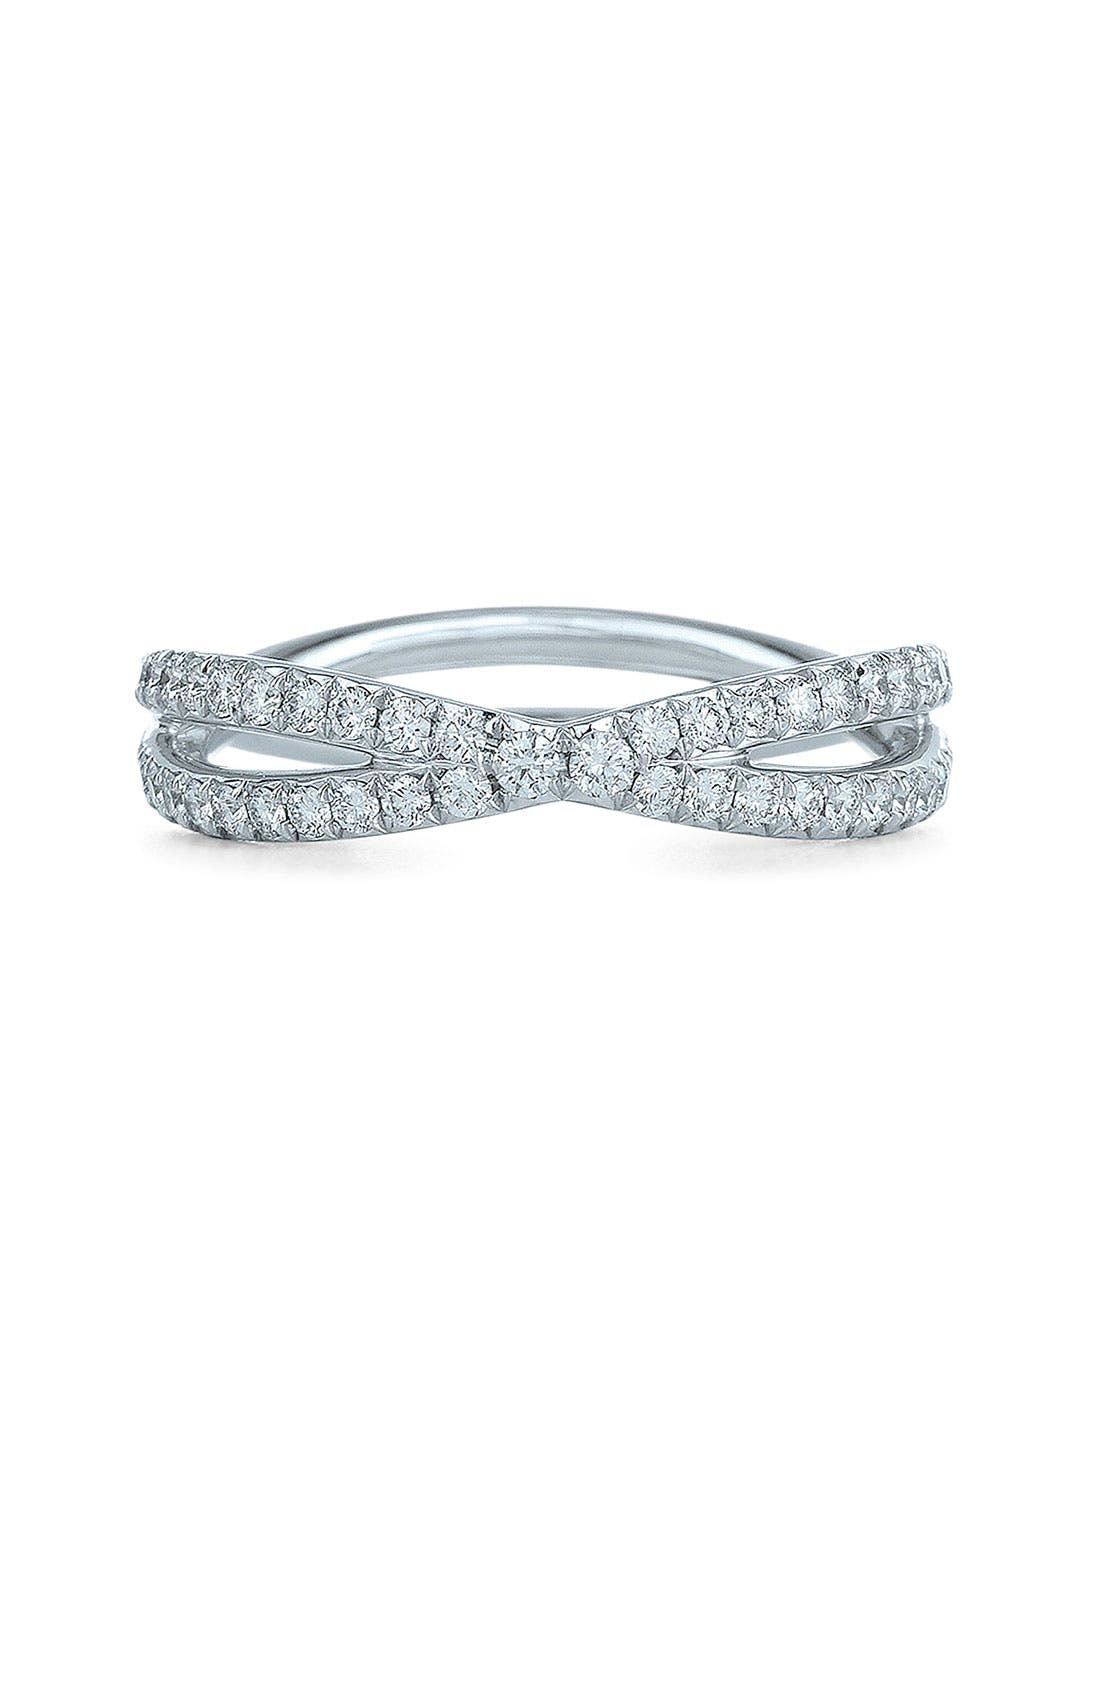 Alternate Image 1 Selected - Kwiat 'Fidelity' Diamond Crossover Ring